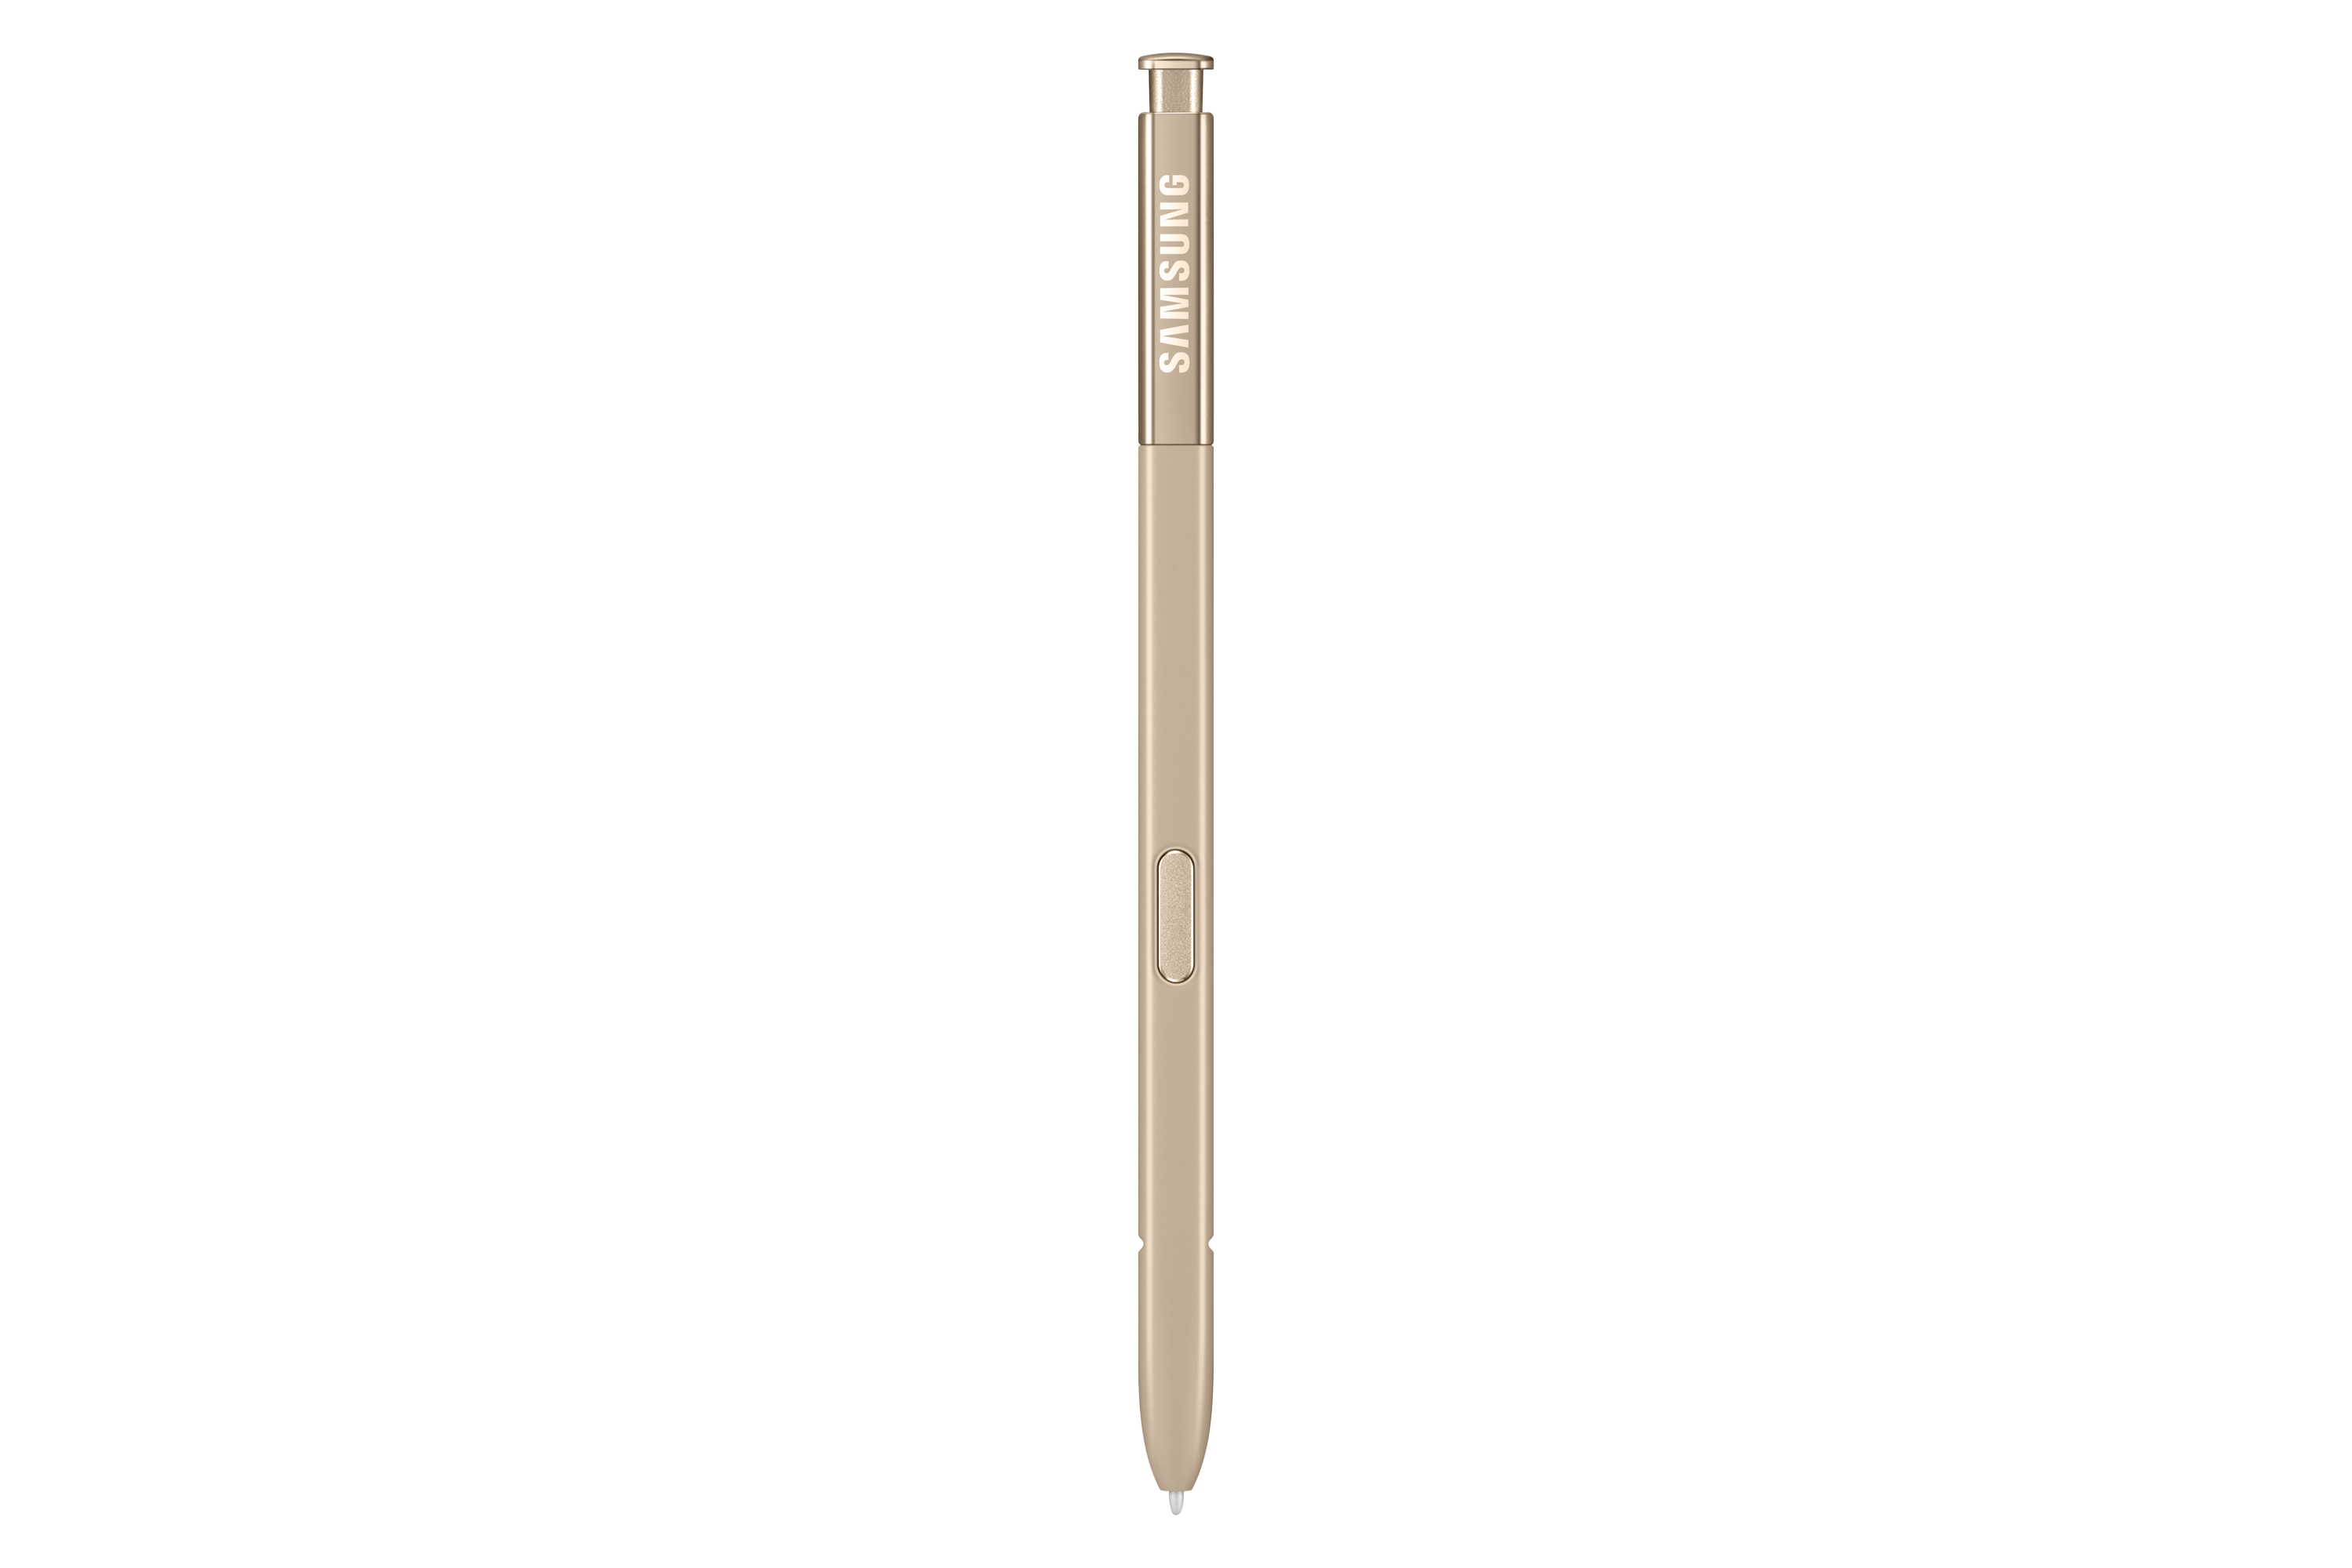 Galaxy Note8 S Pen